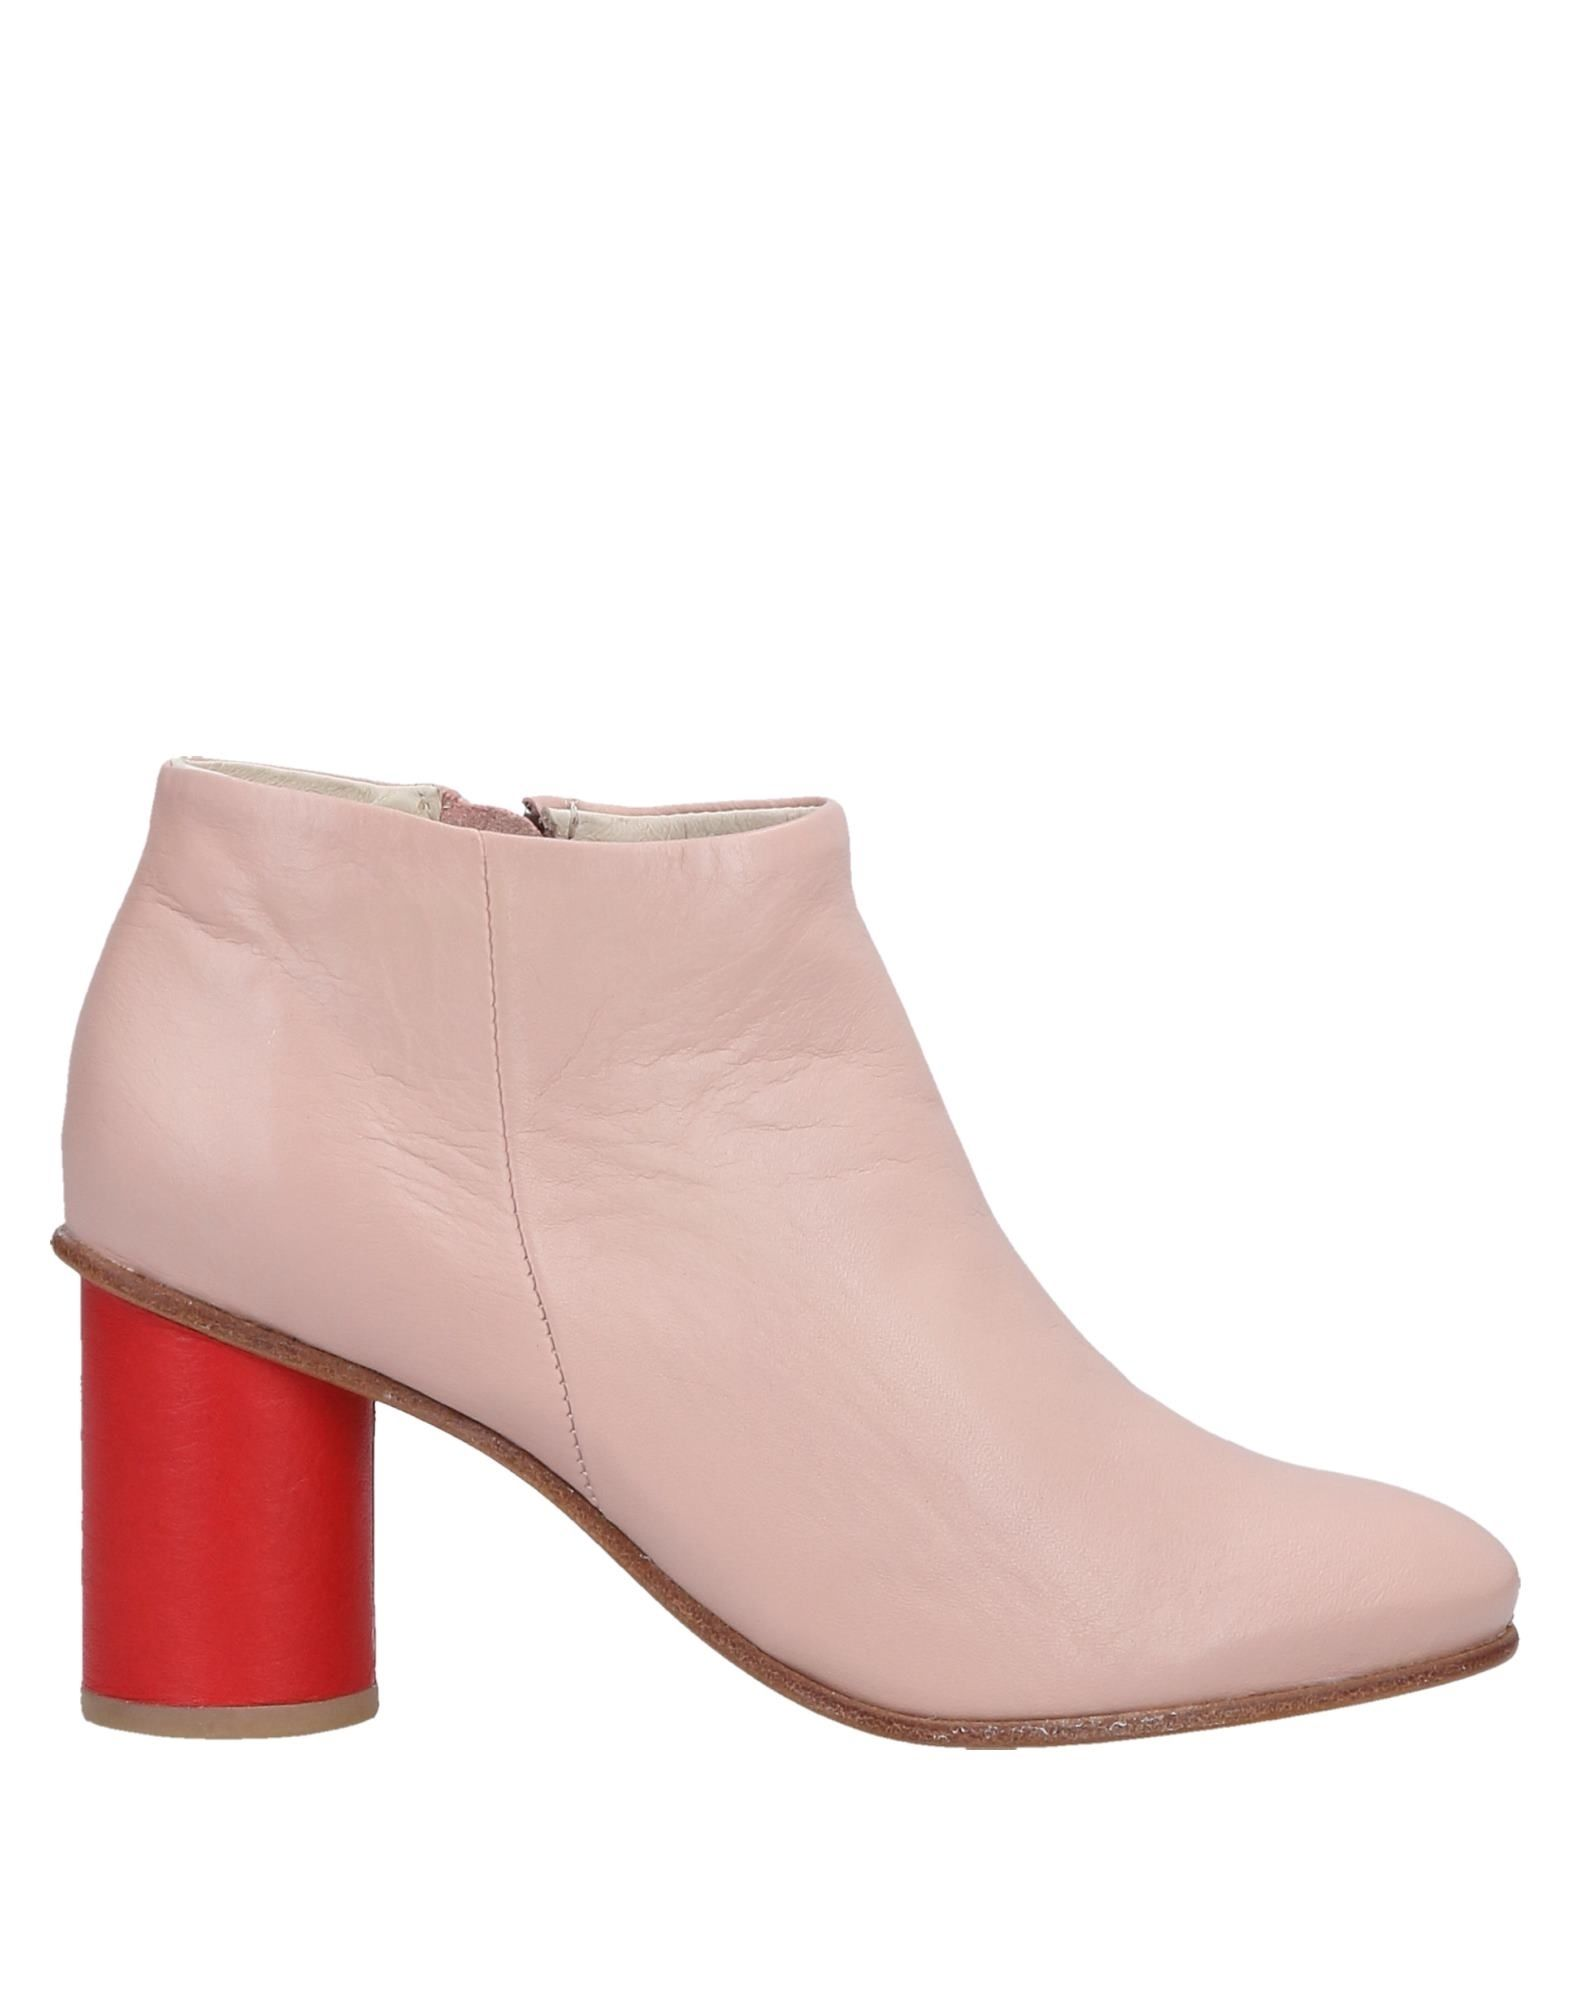 Another Project Ankle Boot - Women Another Project Project Another Ankle Boots online on  Australia - 11565435WG c0d34b